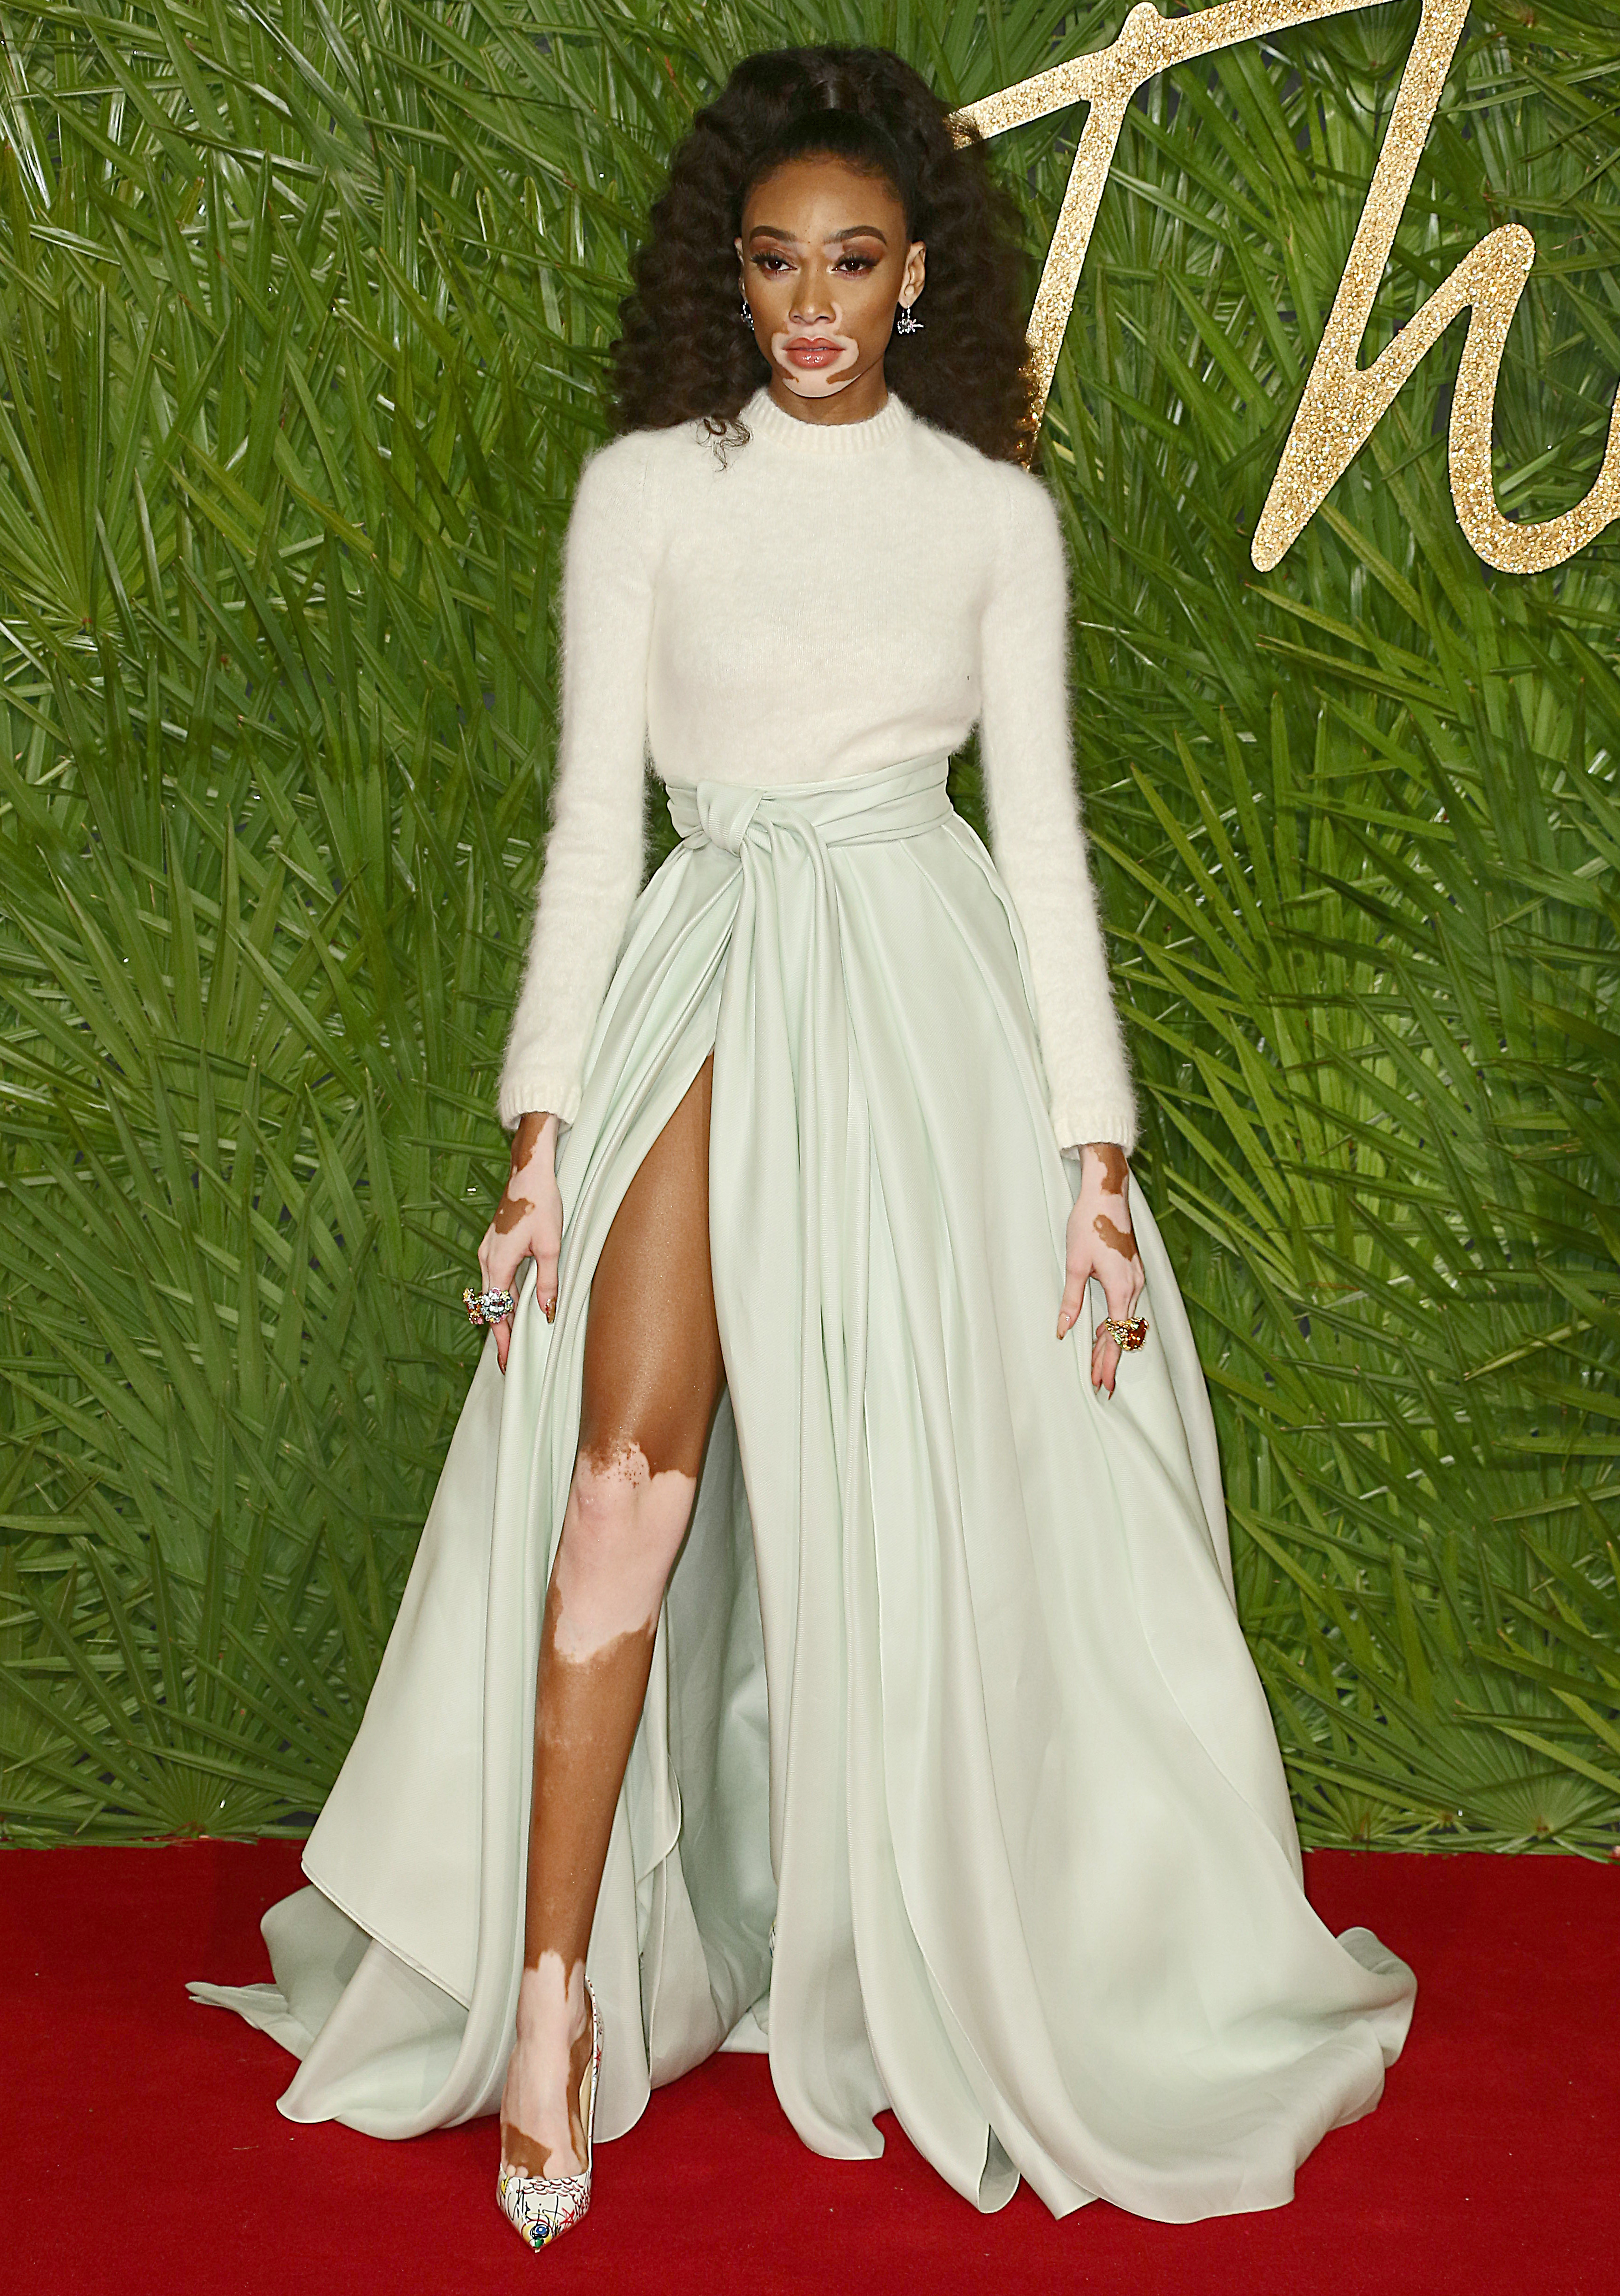 The Fashion Awards 2017, Royal Albert Hall, London UK, 04 December 2017, Photo by Brett D. Cove <P> Pictured: Winnie Harlow <B>Ref: SPL1632930  051217  </B><BR/> Picture by: Brett D. Cove / Splash News<BR/> </P><P> <B>Splash News and Pictures</B><BR/> Los Angeles:310-821-2666<BR/> New York:212-619-2666<BR/> London:870-934-2666<BR/> <span id=